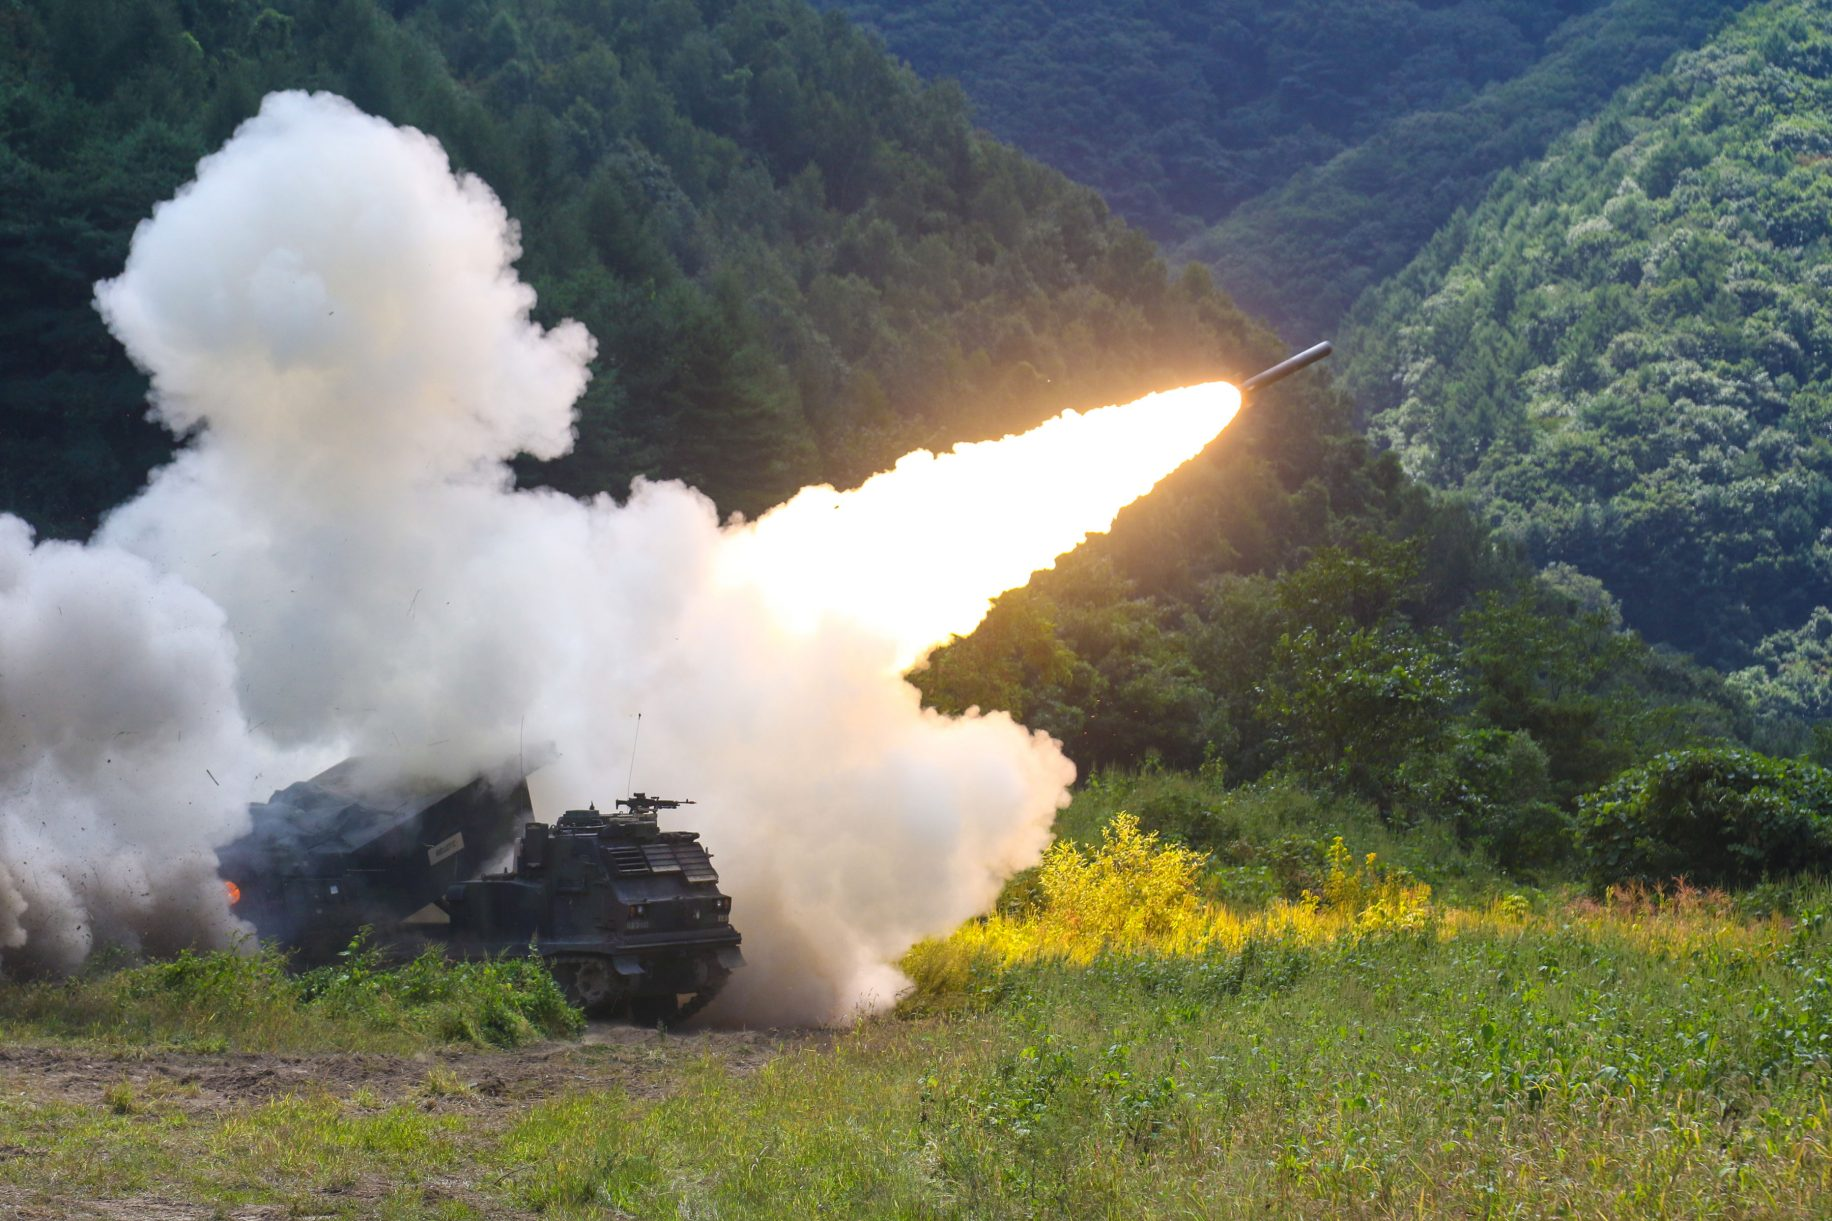 South Korea developing its own nukes one solution to US cost-sharing demands, former diplomat says